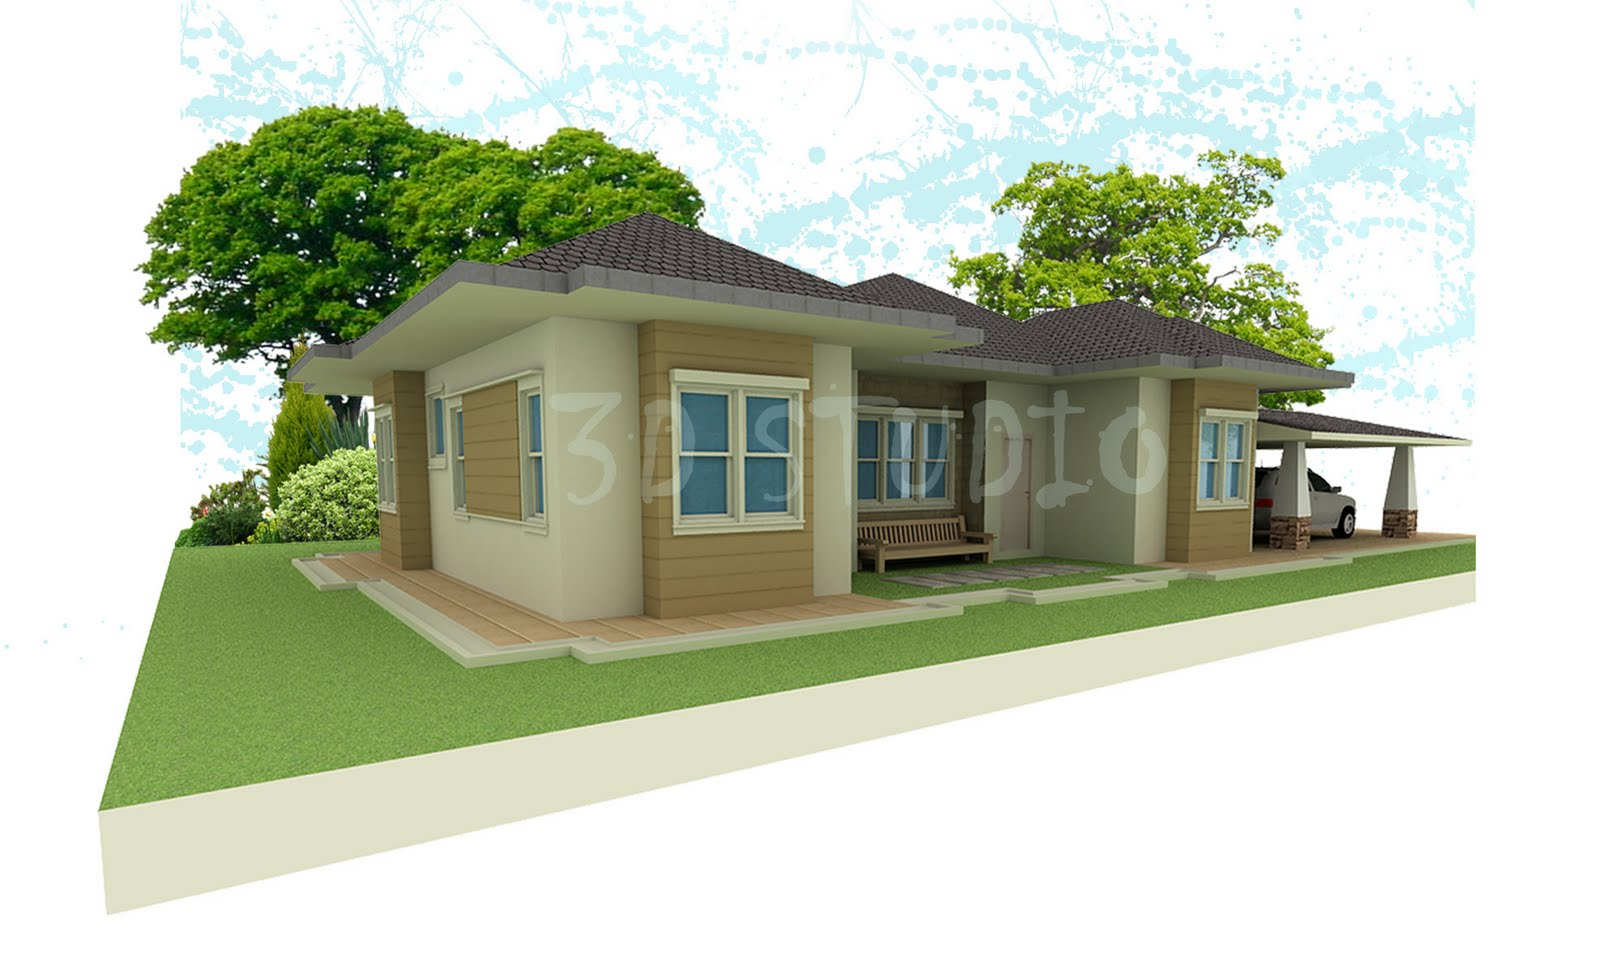 Top 19 photos ideas for single storey bungalow building for Single storey bungalow design